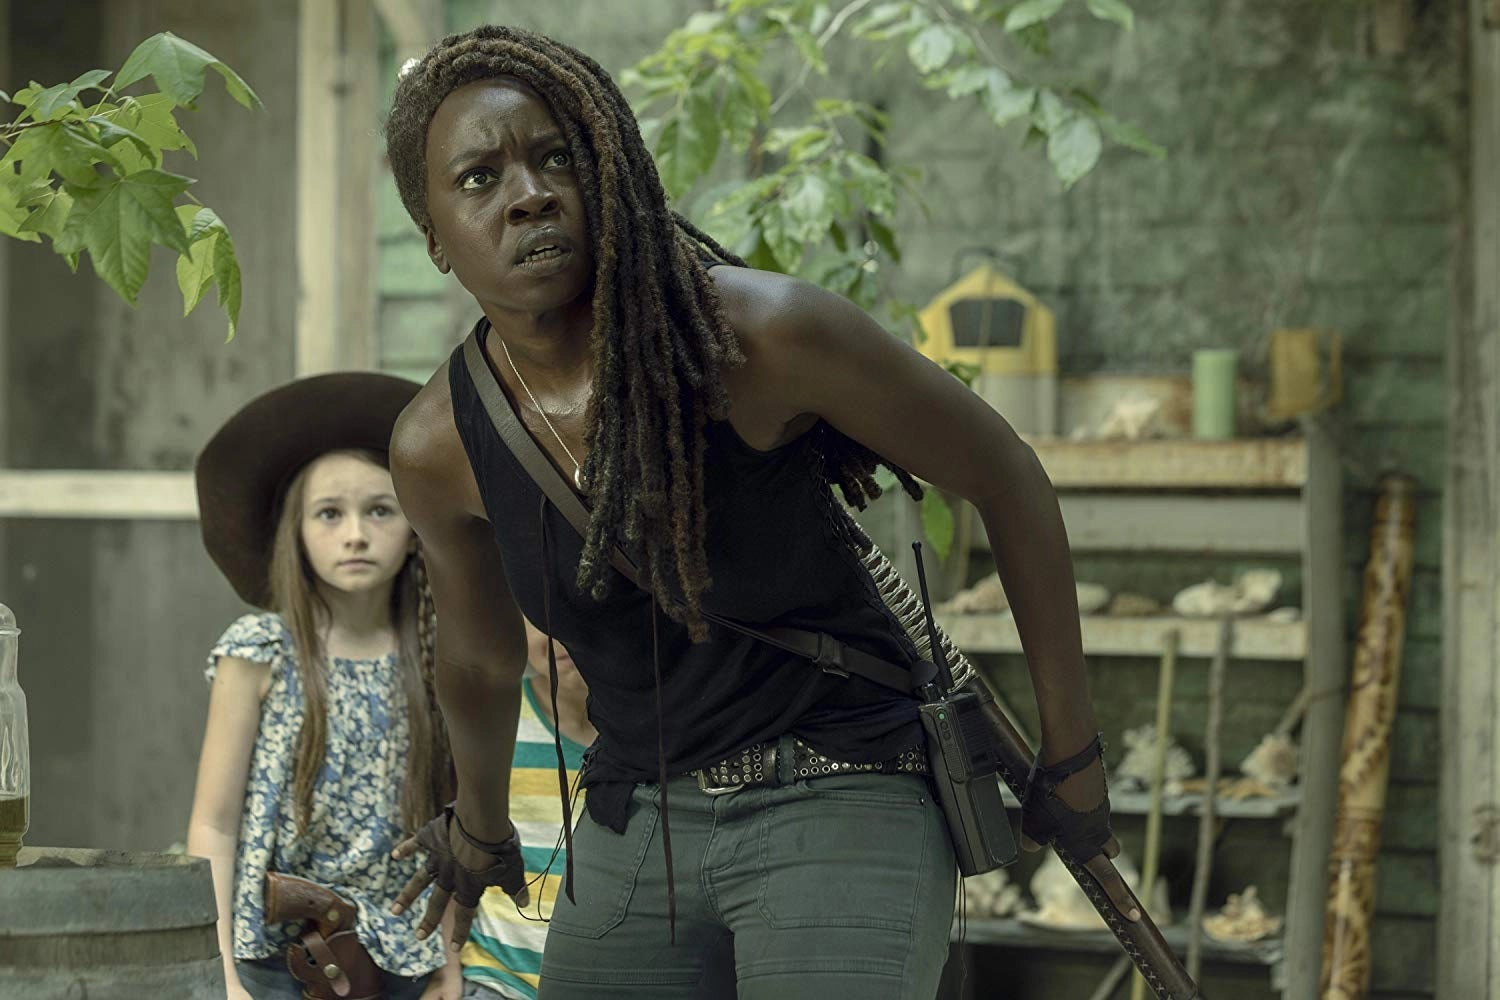 Fans are going to have to wait to watch The Walking Dead Season 10's finale